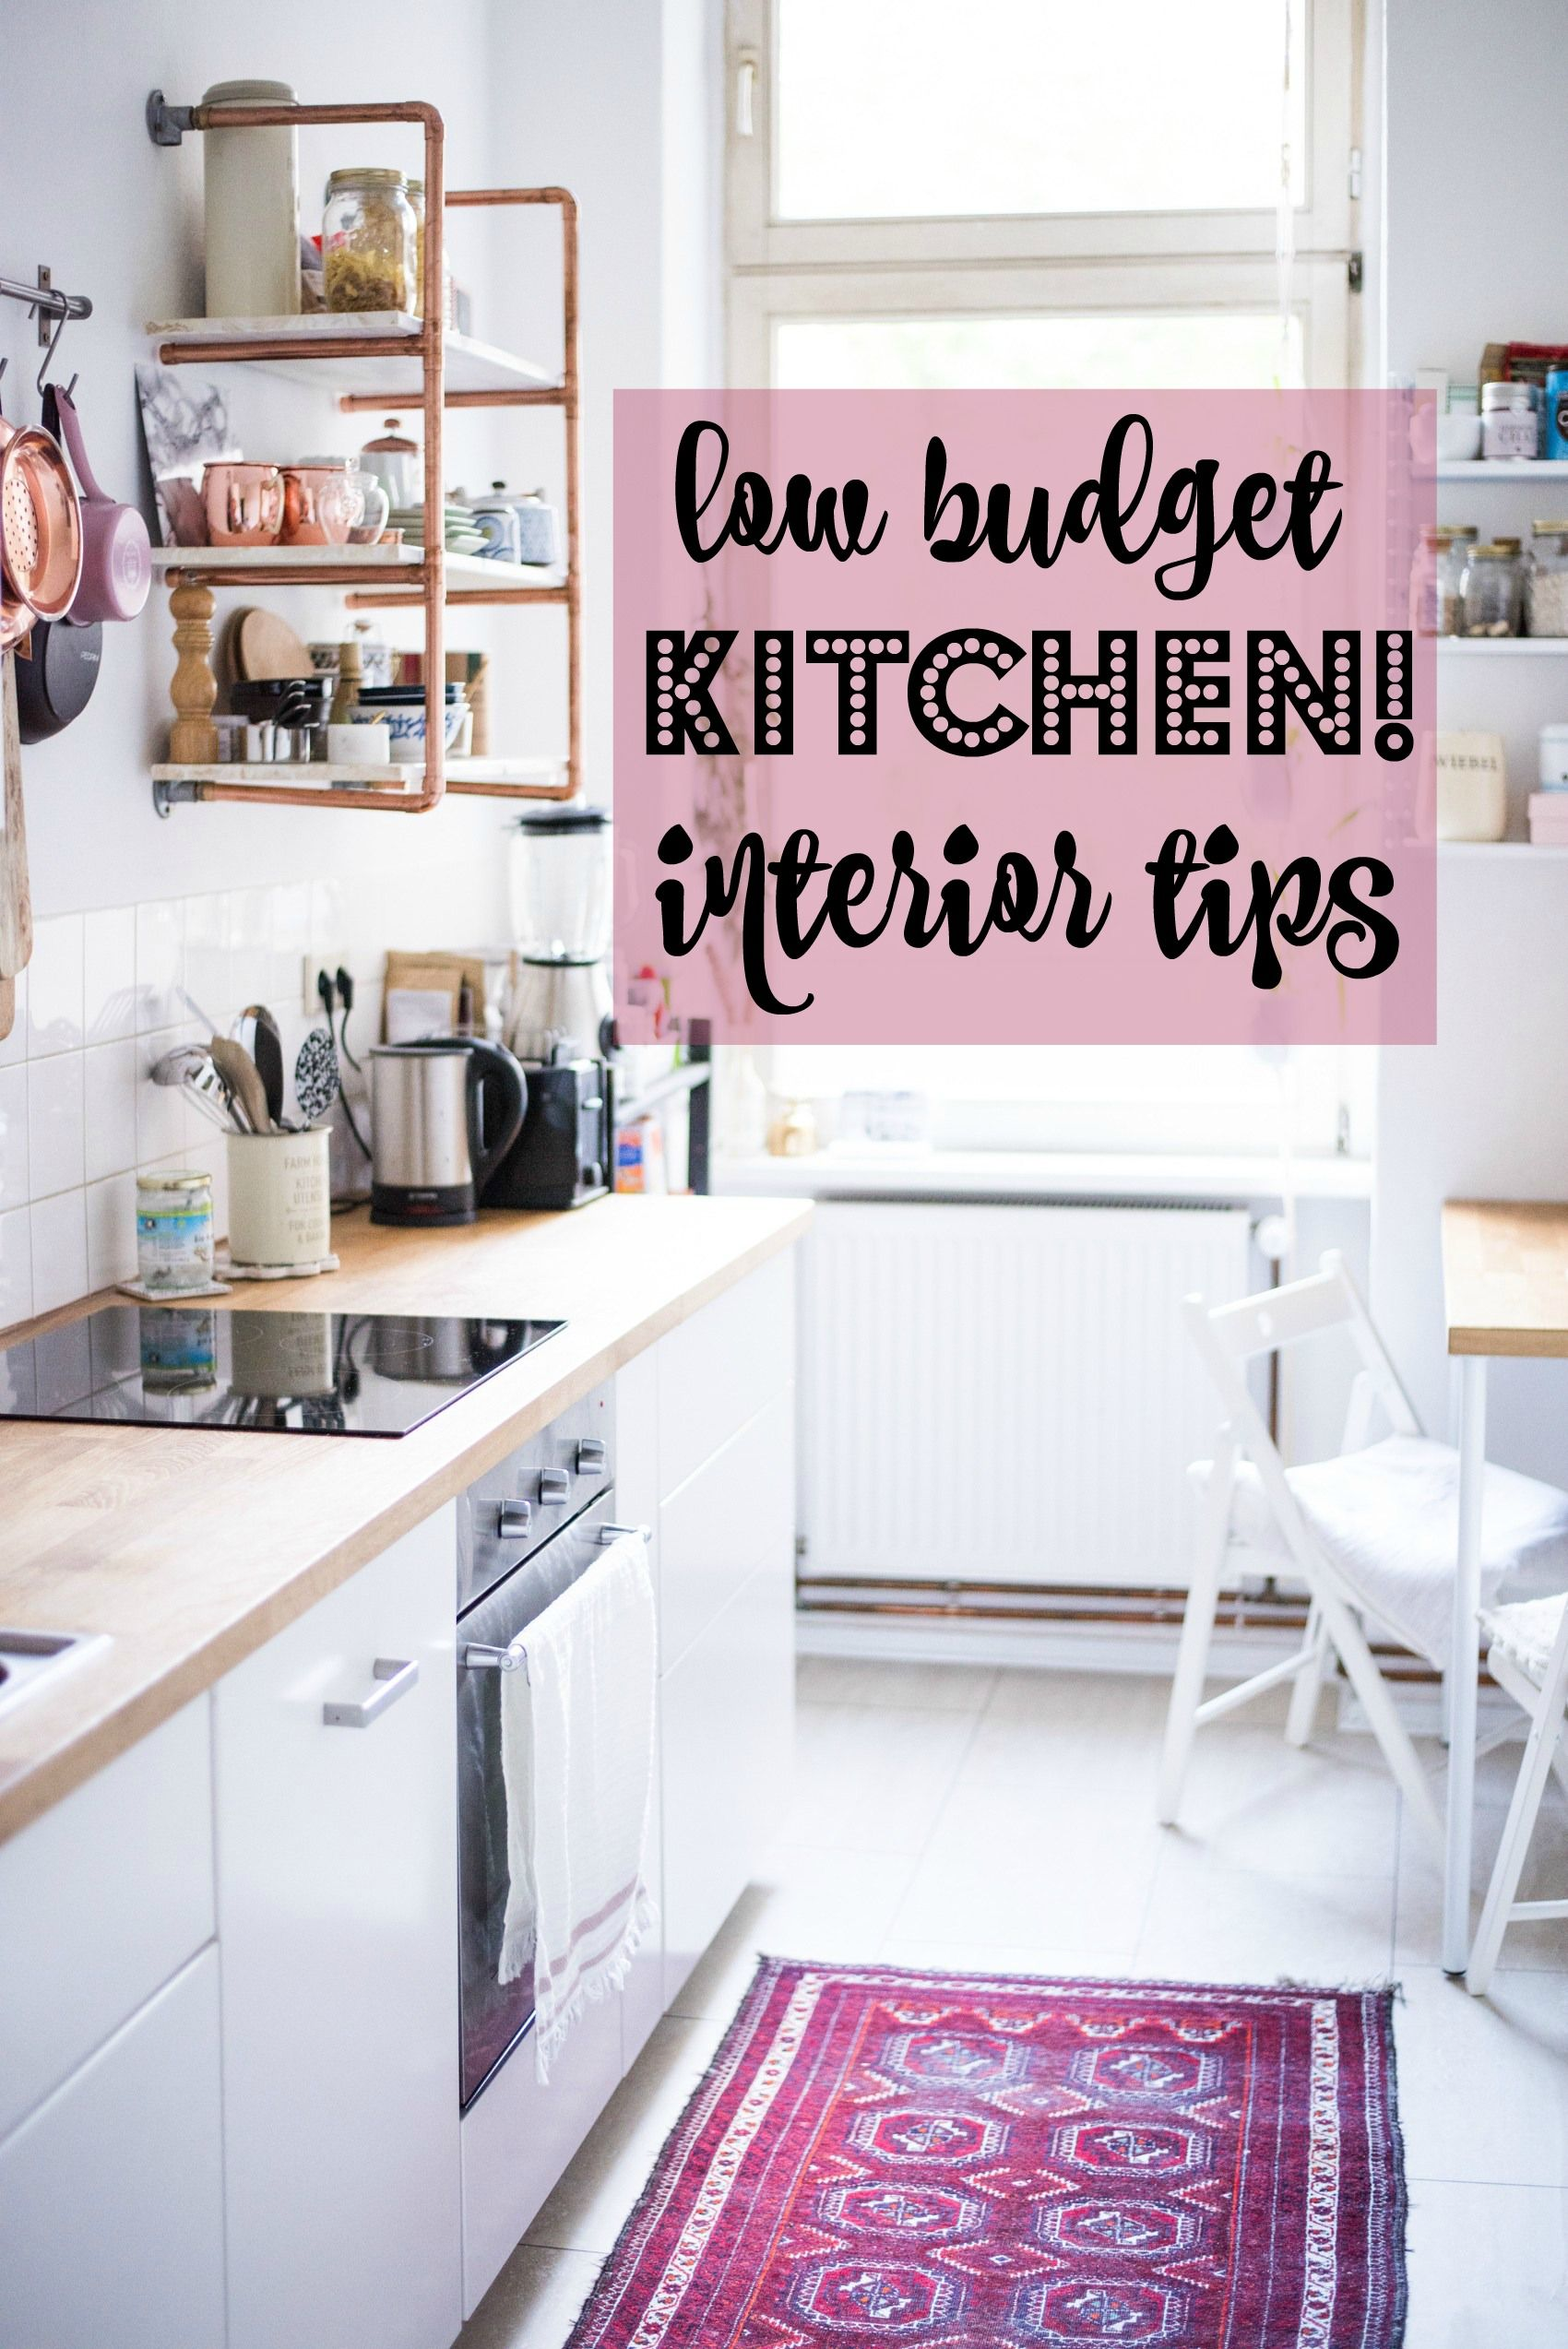 10 low budget interior tips for your kitchen | Erste wohnung, Küche ...